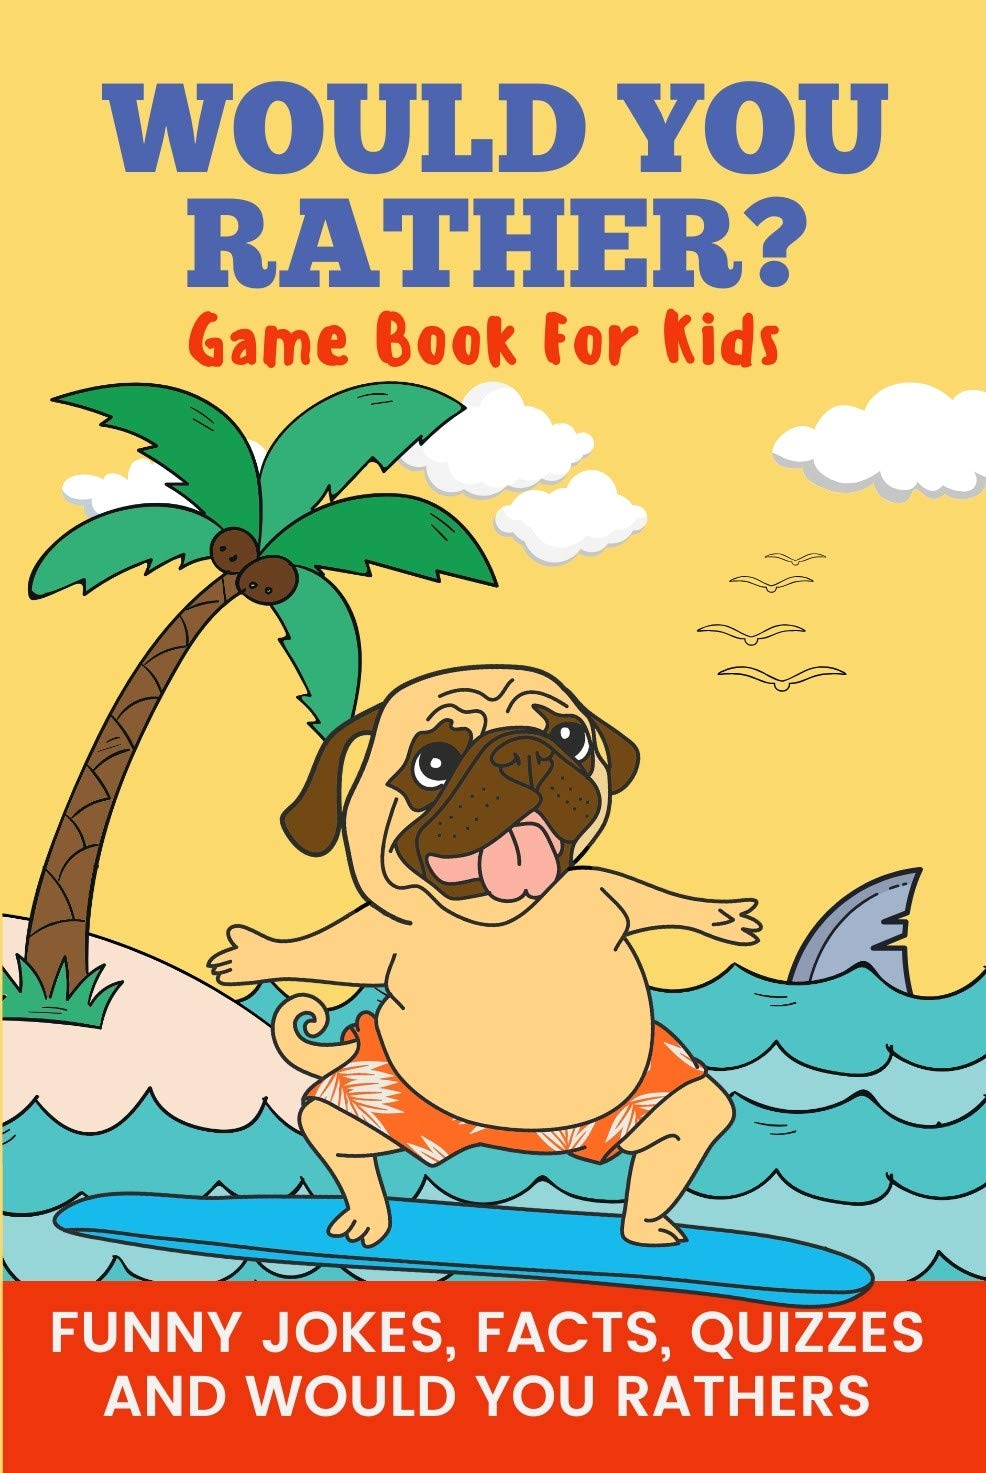 Would You Rather? Game Book for Kids Funny Jokes, Facts, Quizzes, and Would You Rathers